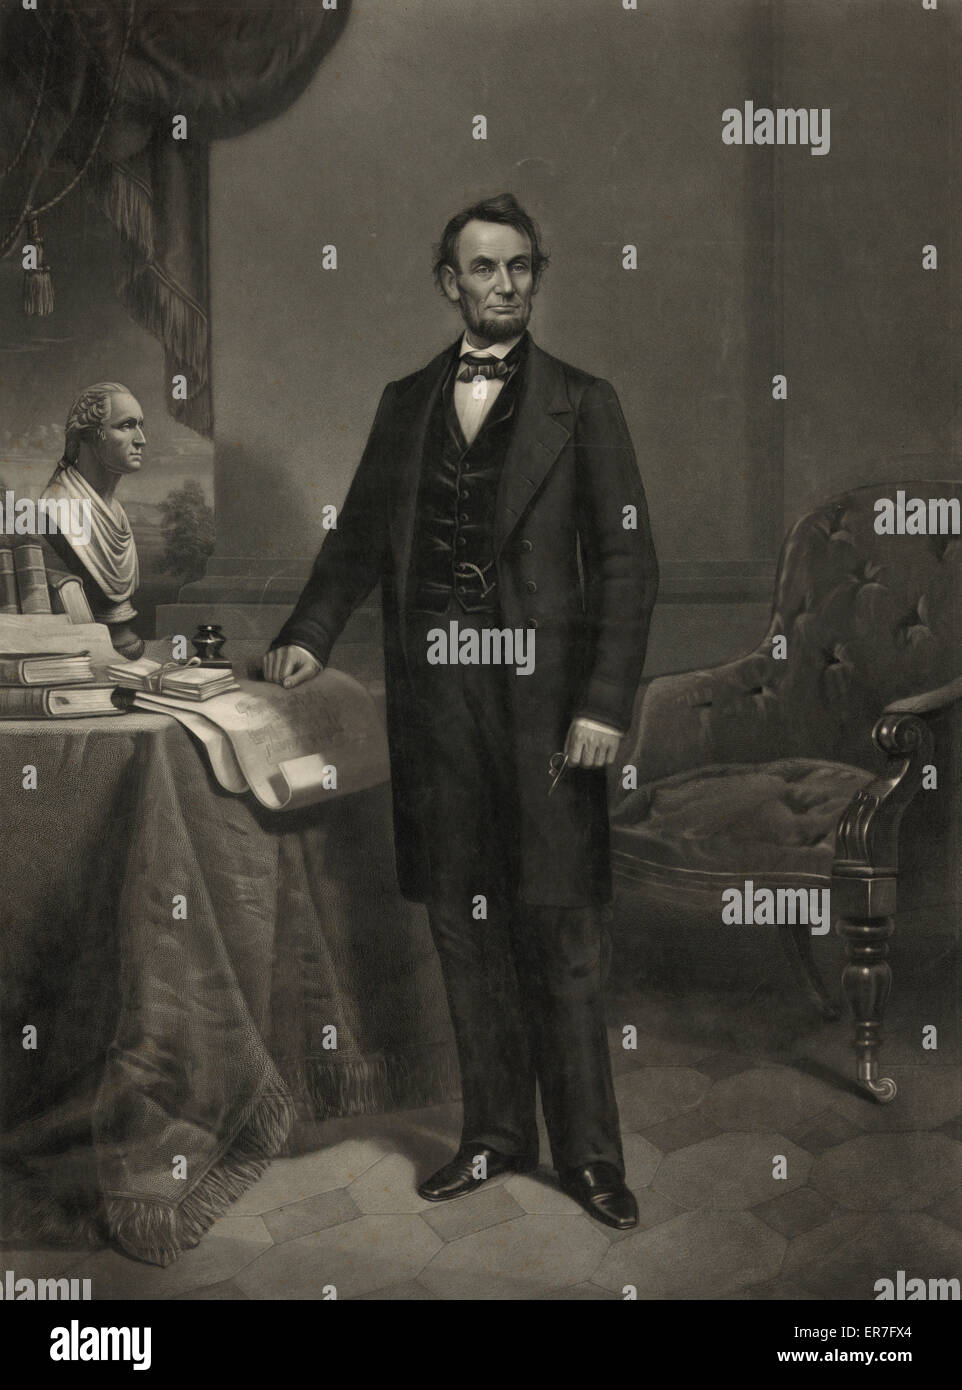 Abraham Lincoln. President of the United States. Stock Photo